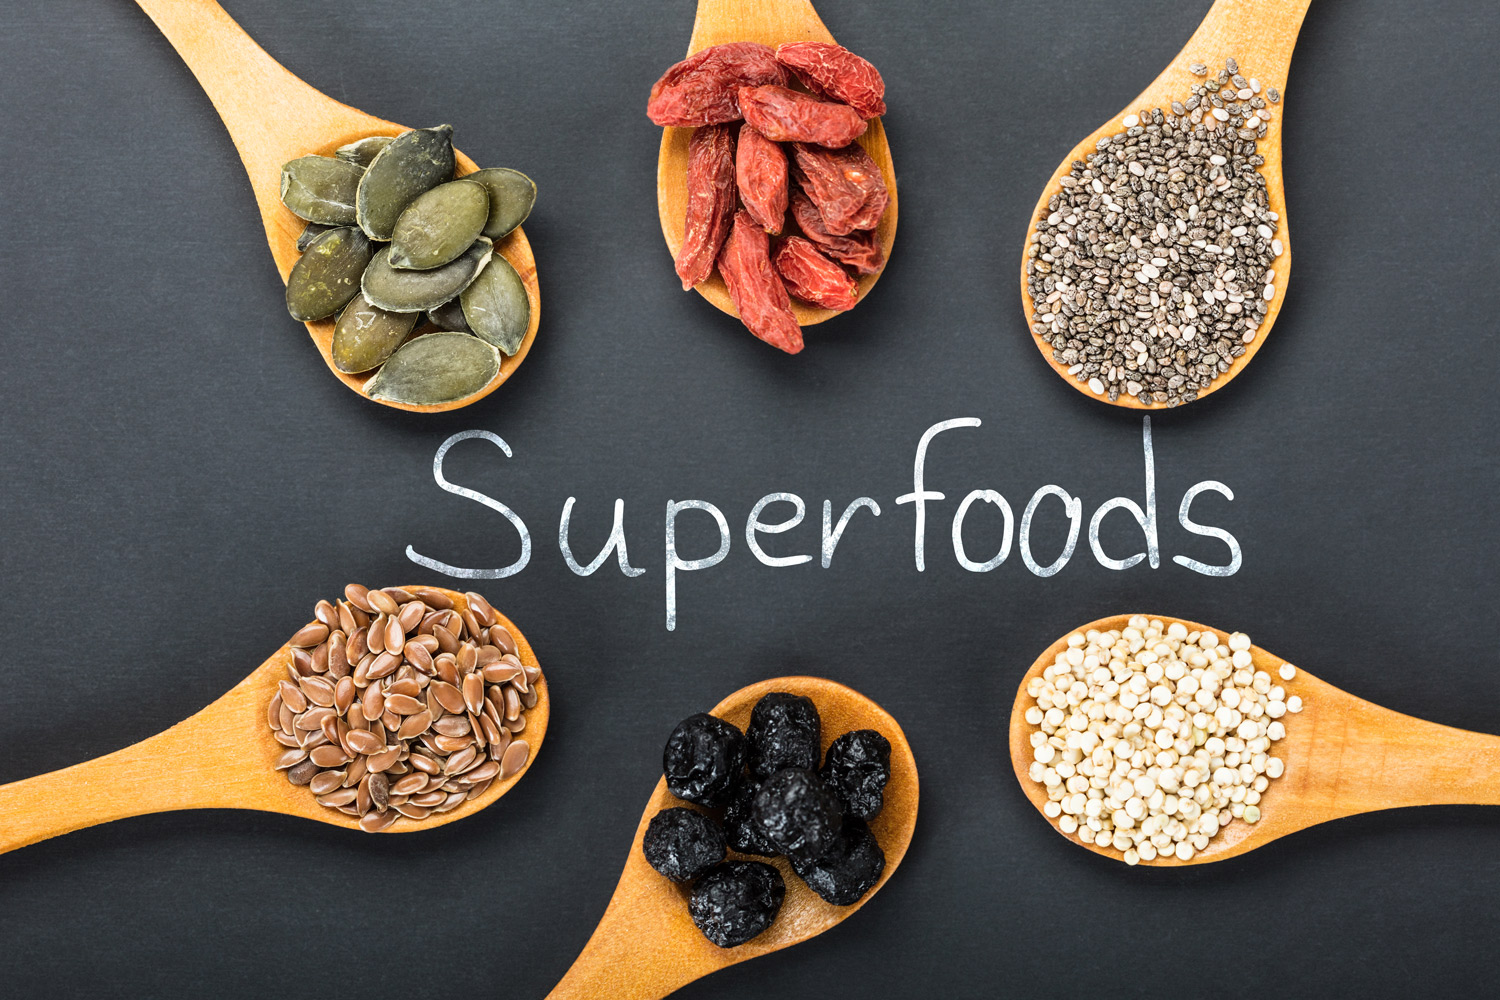 Superfoods-on-spoons-with-a-lettering-black-backround-wooden-spoons.jpg